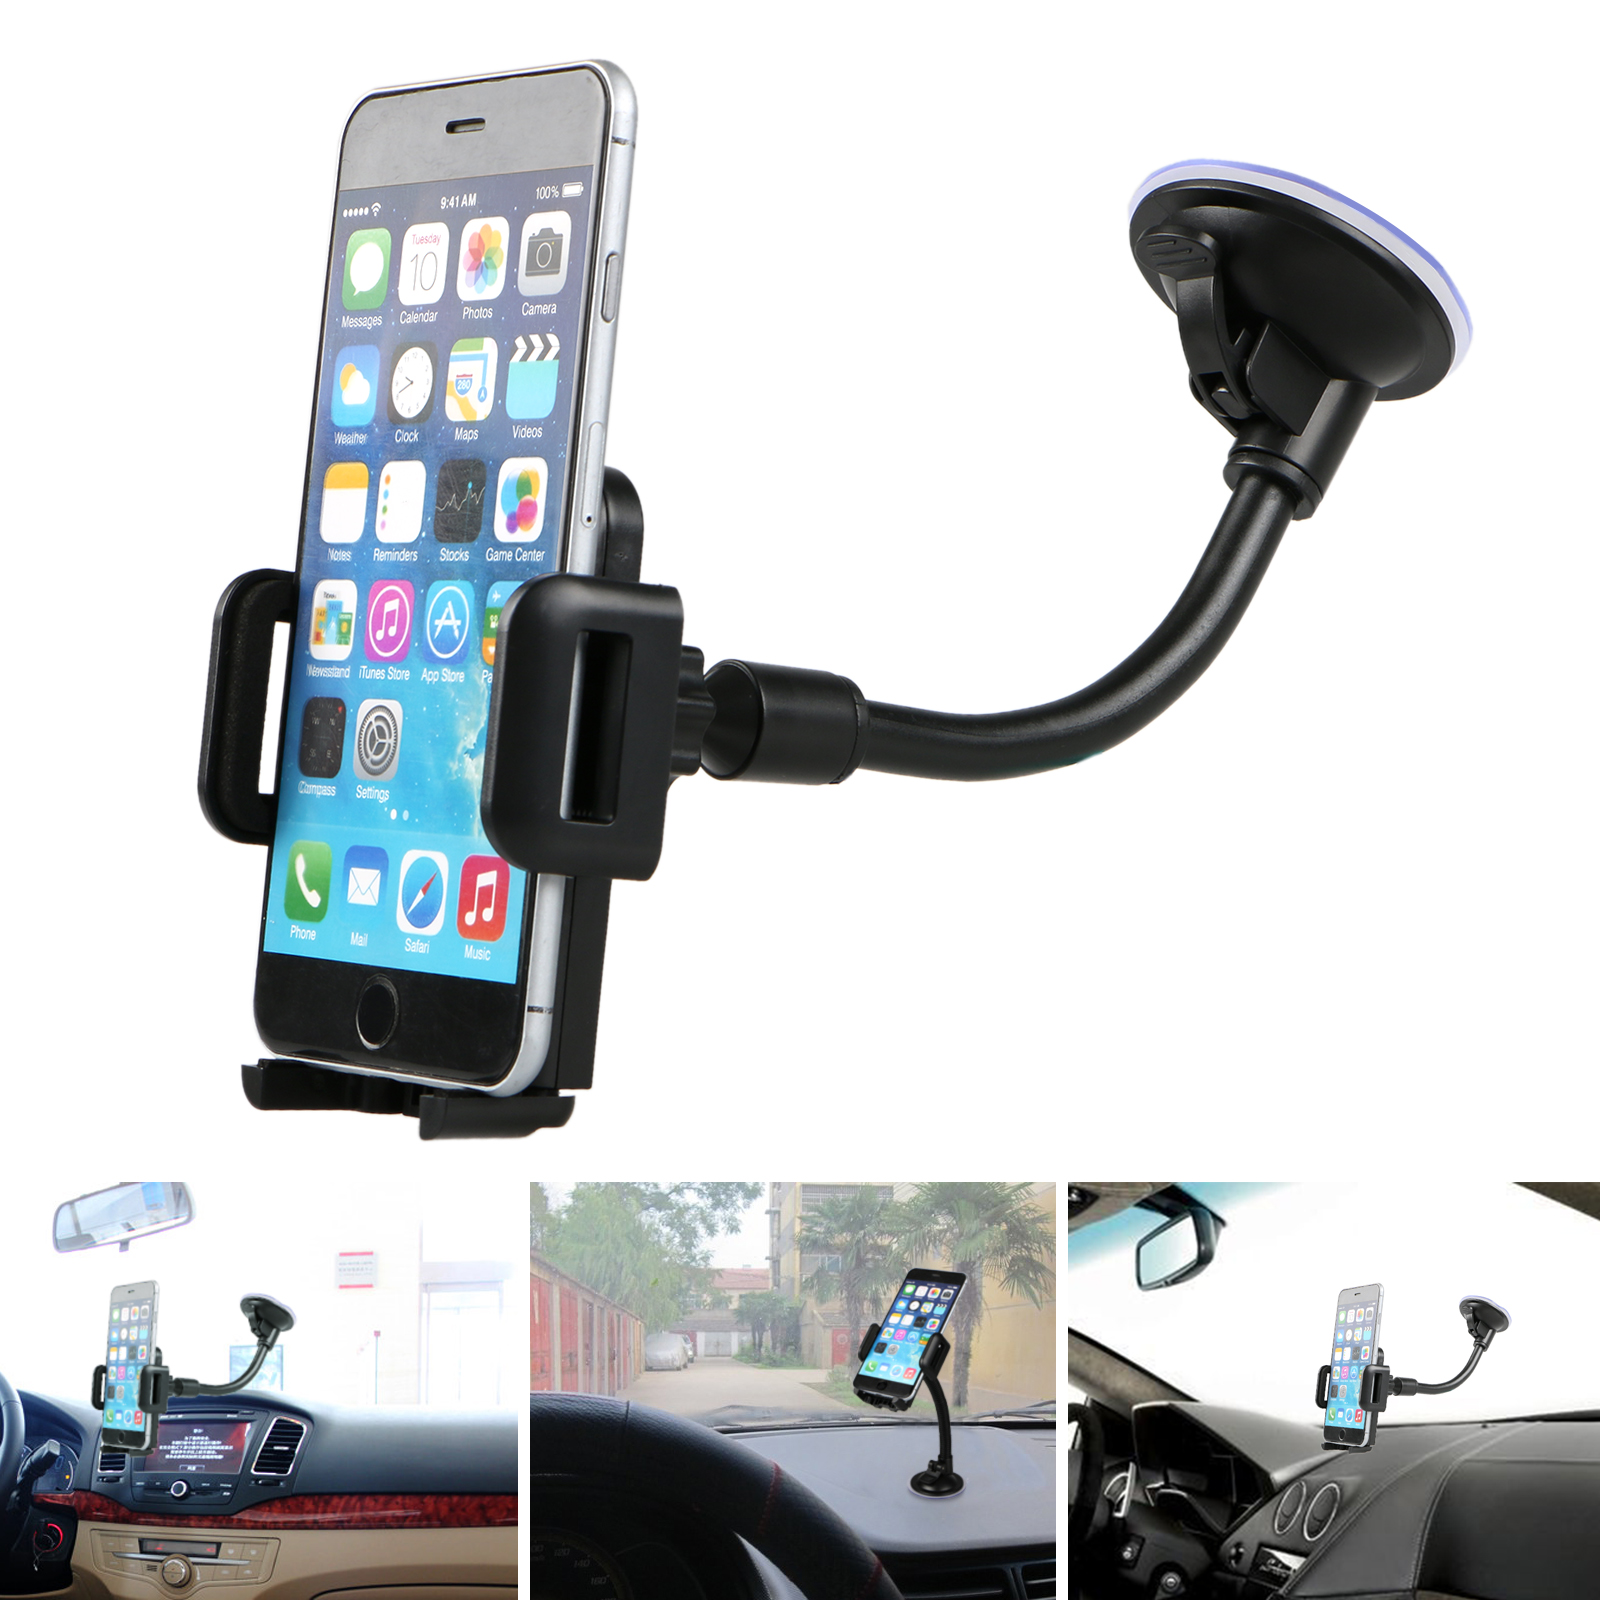 Car Phone Mount, TSV Universal Phone Holder Cell Phone Car Air Vent Holder Dashboard Mount Windshield Mount for iPhone 7 Plus,8 Plus,X,7,6S,6,Samsung Galaxy Note S6 S7 and More